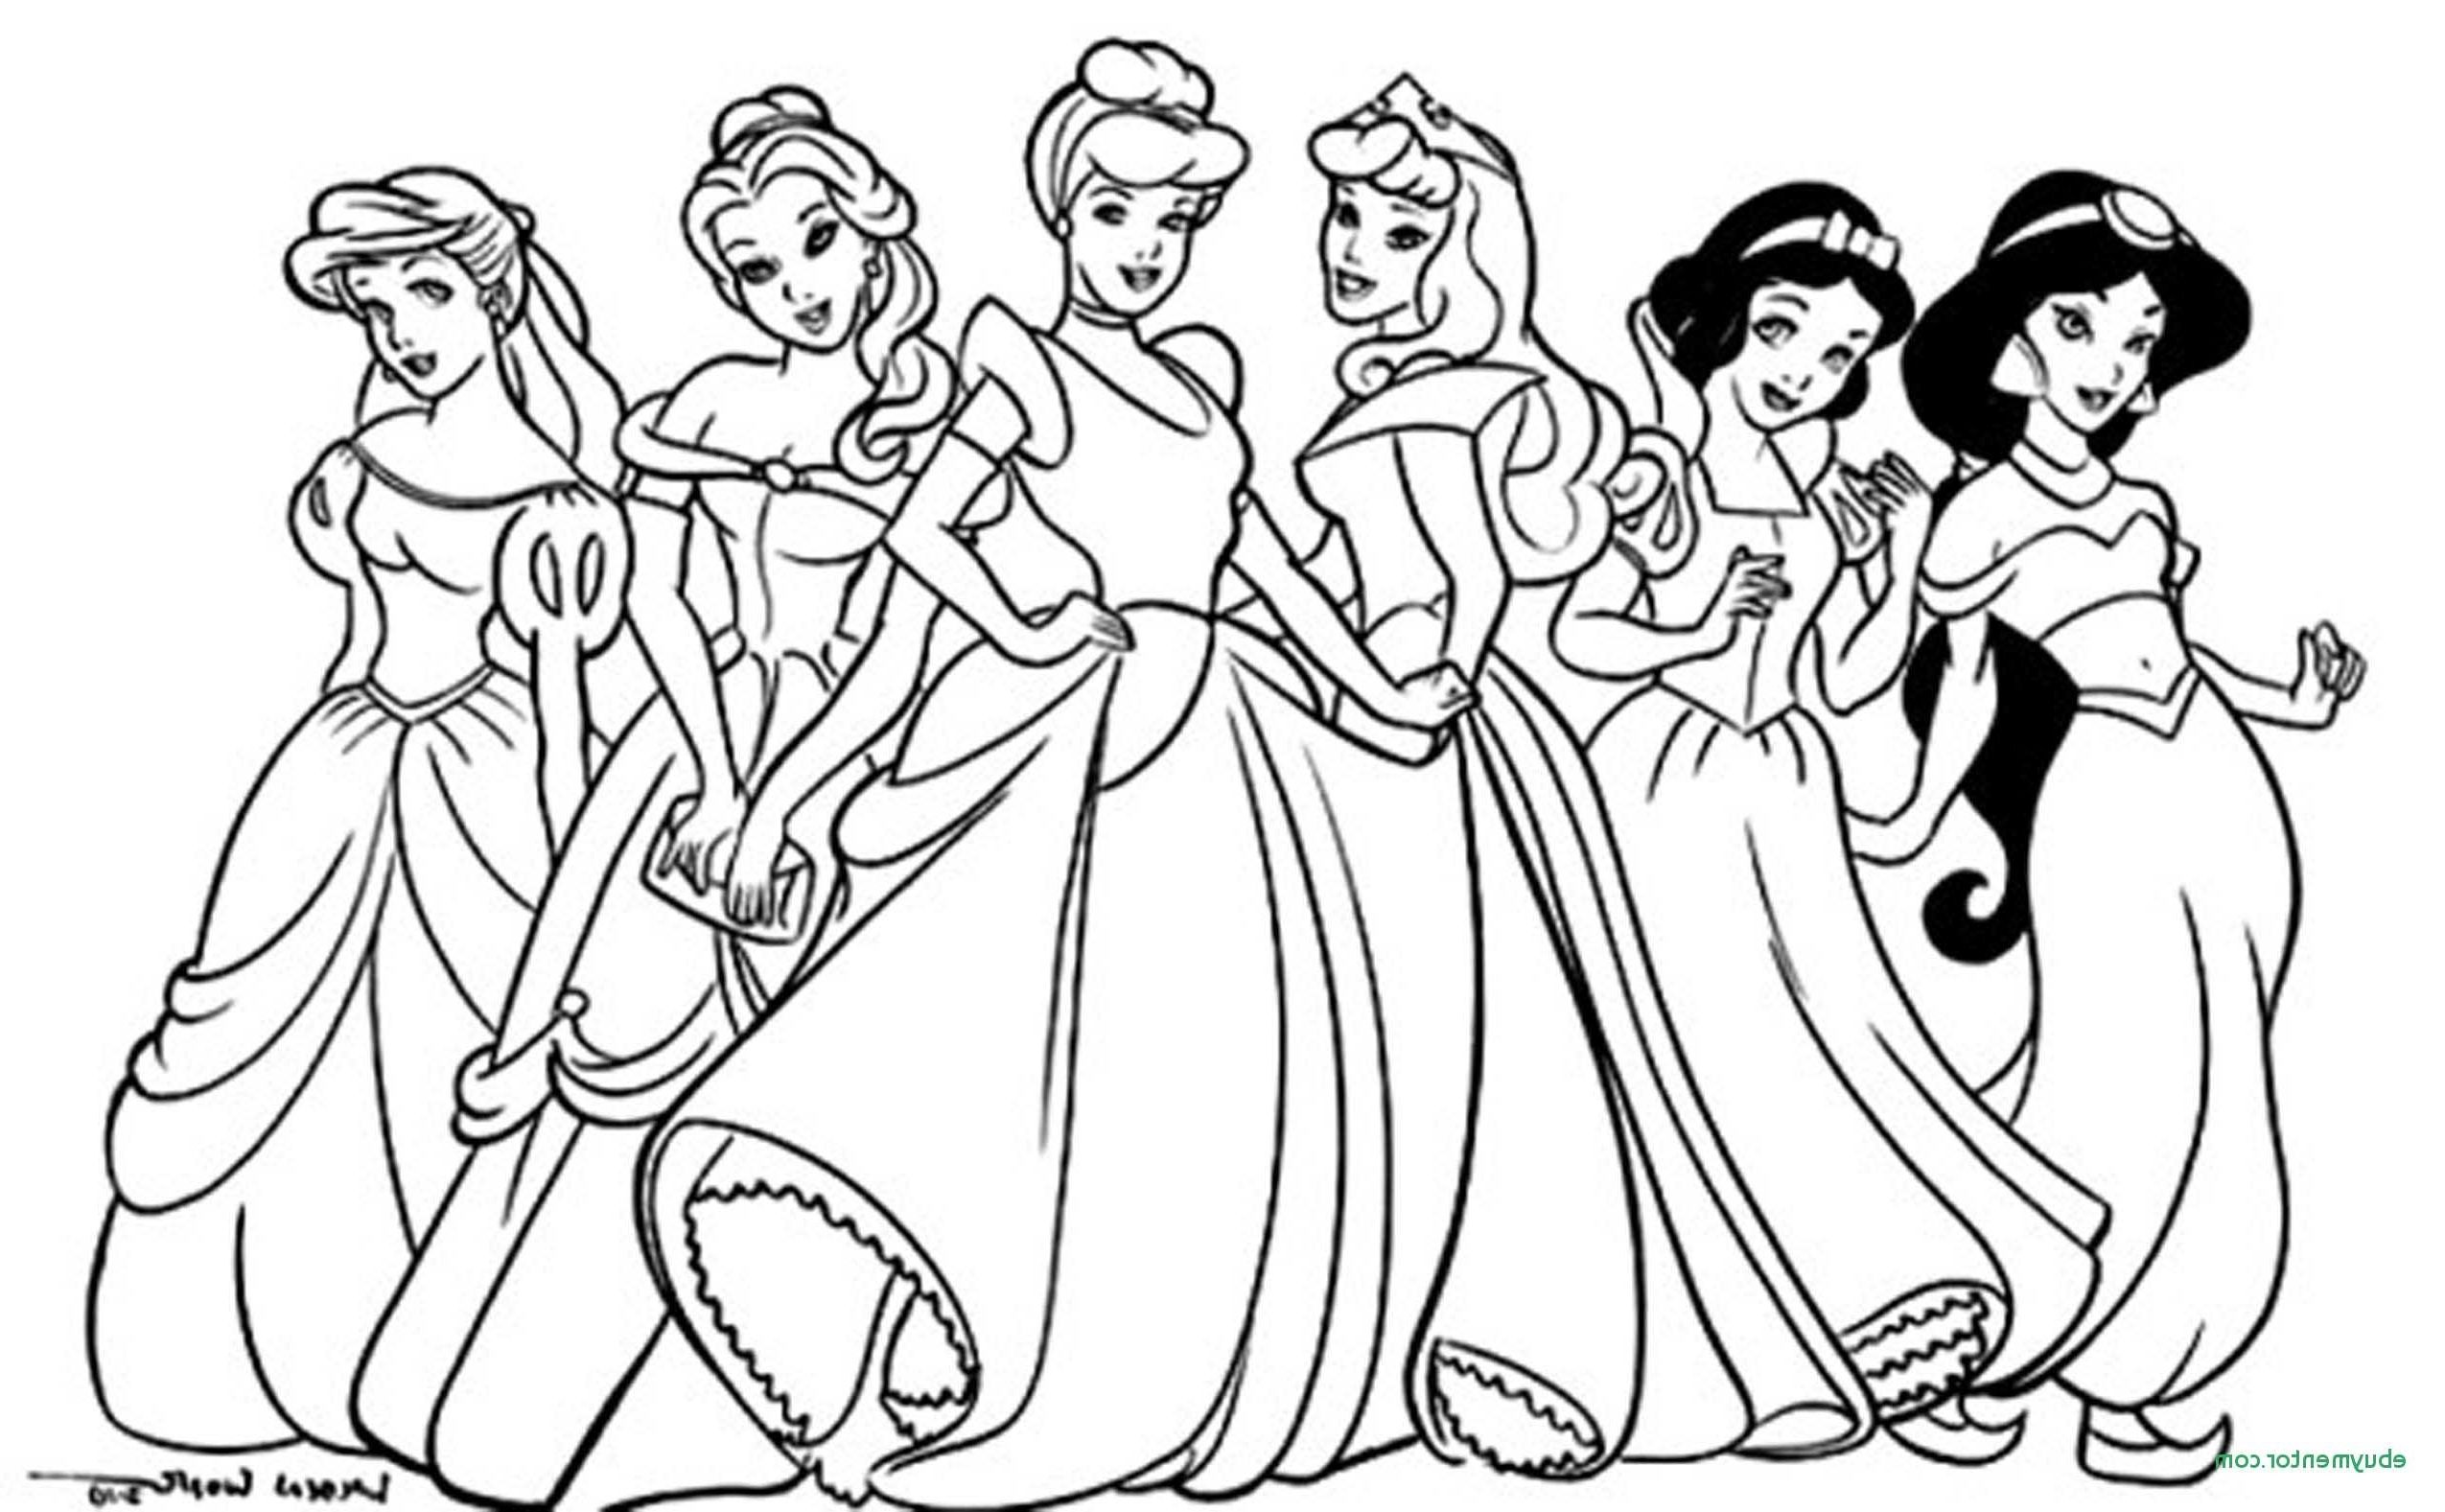 Free Disney Princess Coloring Pages Princess Coloring Pages Princess Coloring Disney Princess Coloring Pages